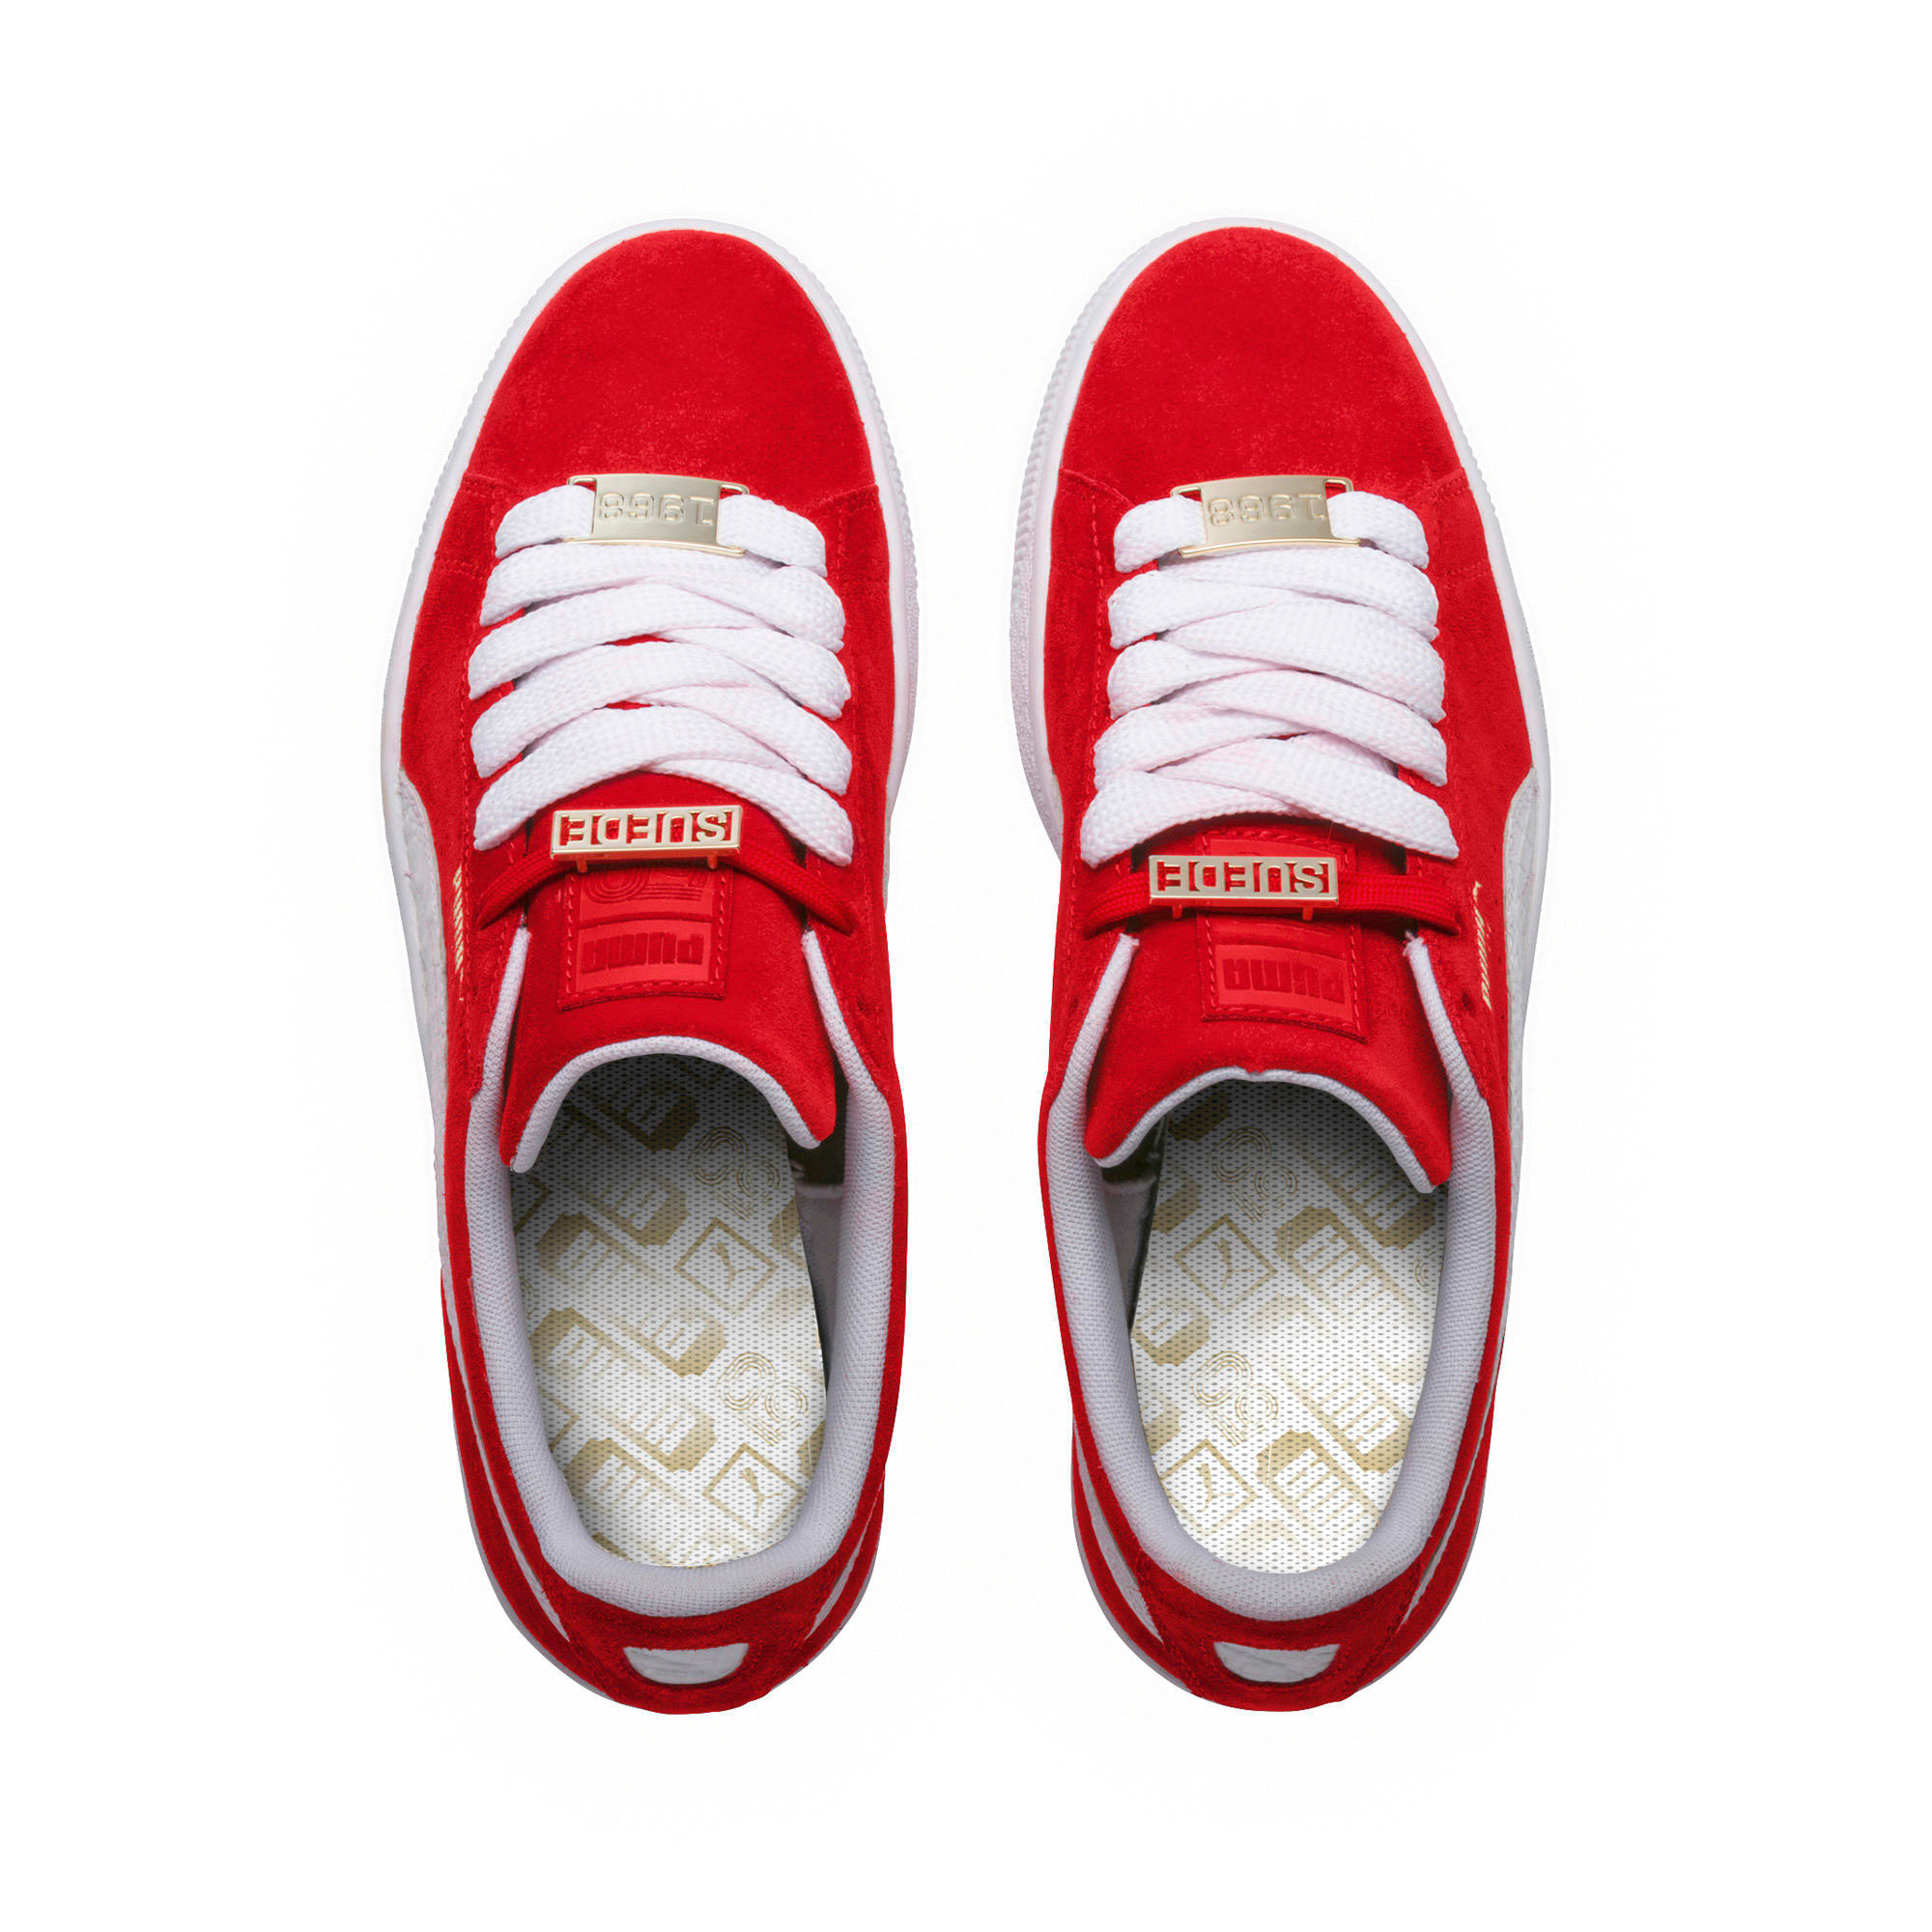 Thumbnail 5 of Suede Classic B-BOY Fabulous Trainers, Flame Scarlet-Puma White, medium-IND